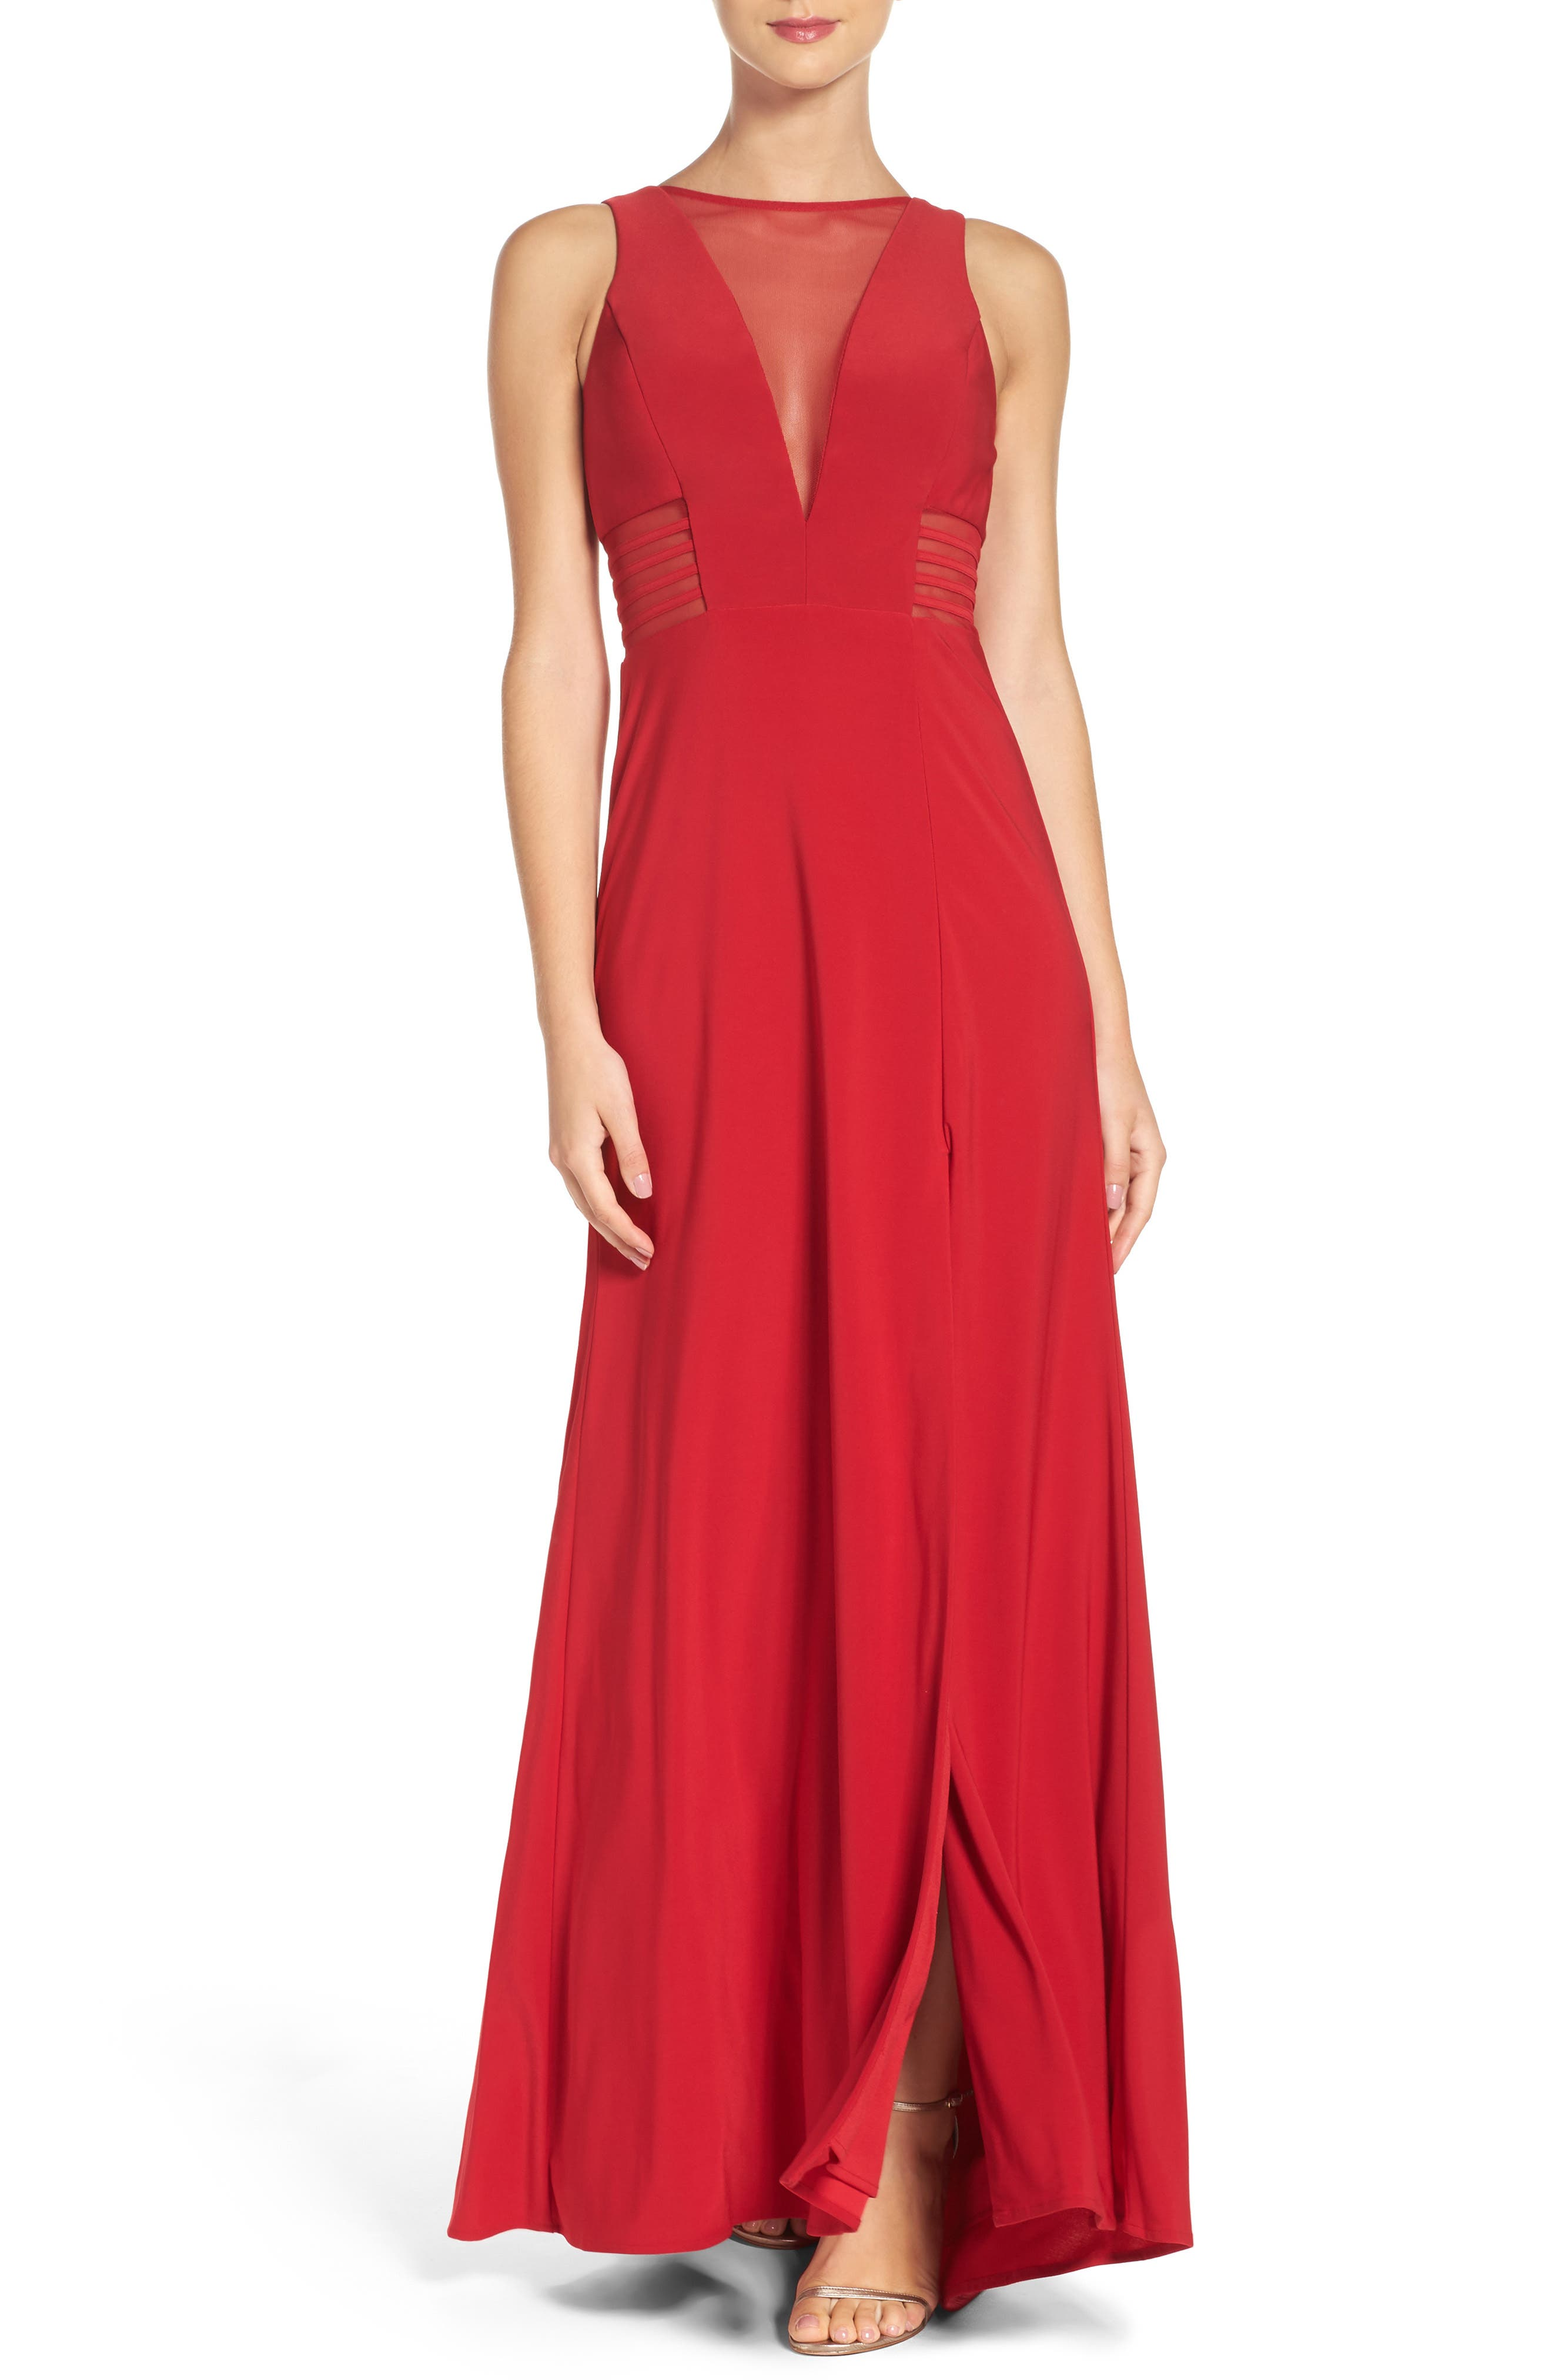 Morgan & Co. Illusion Gown, /10 - Red